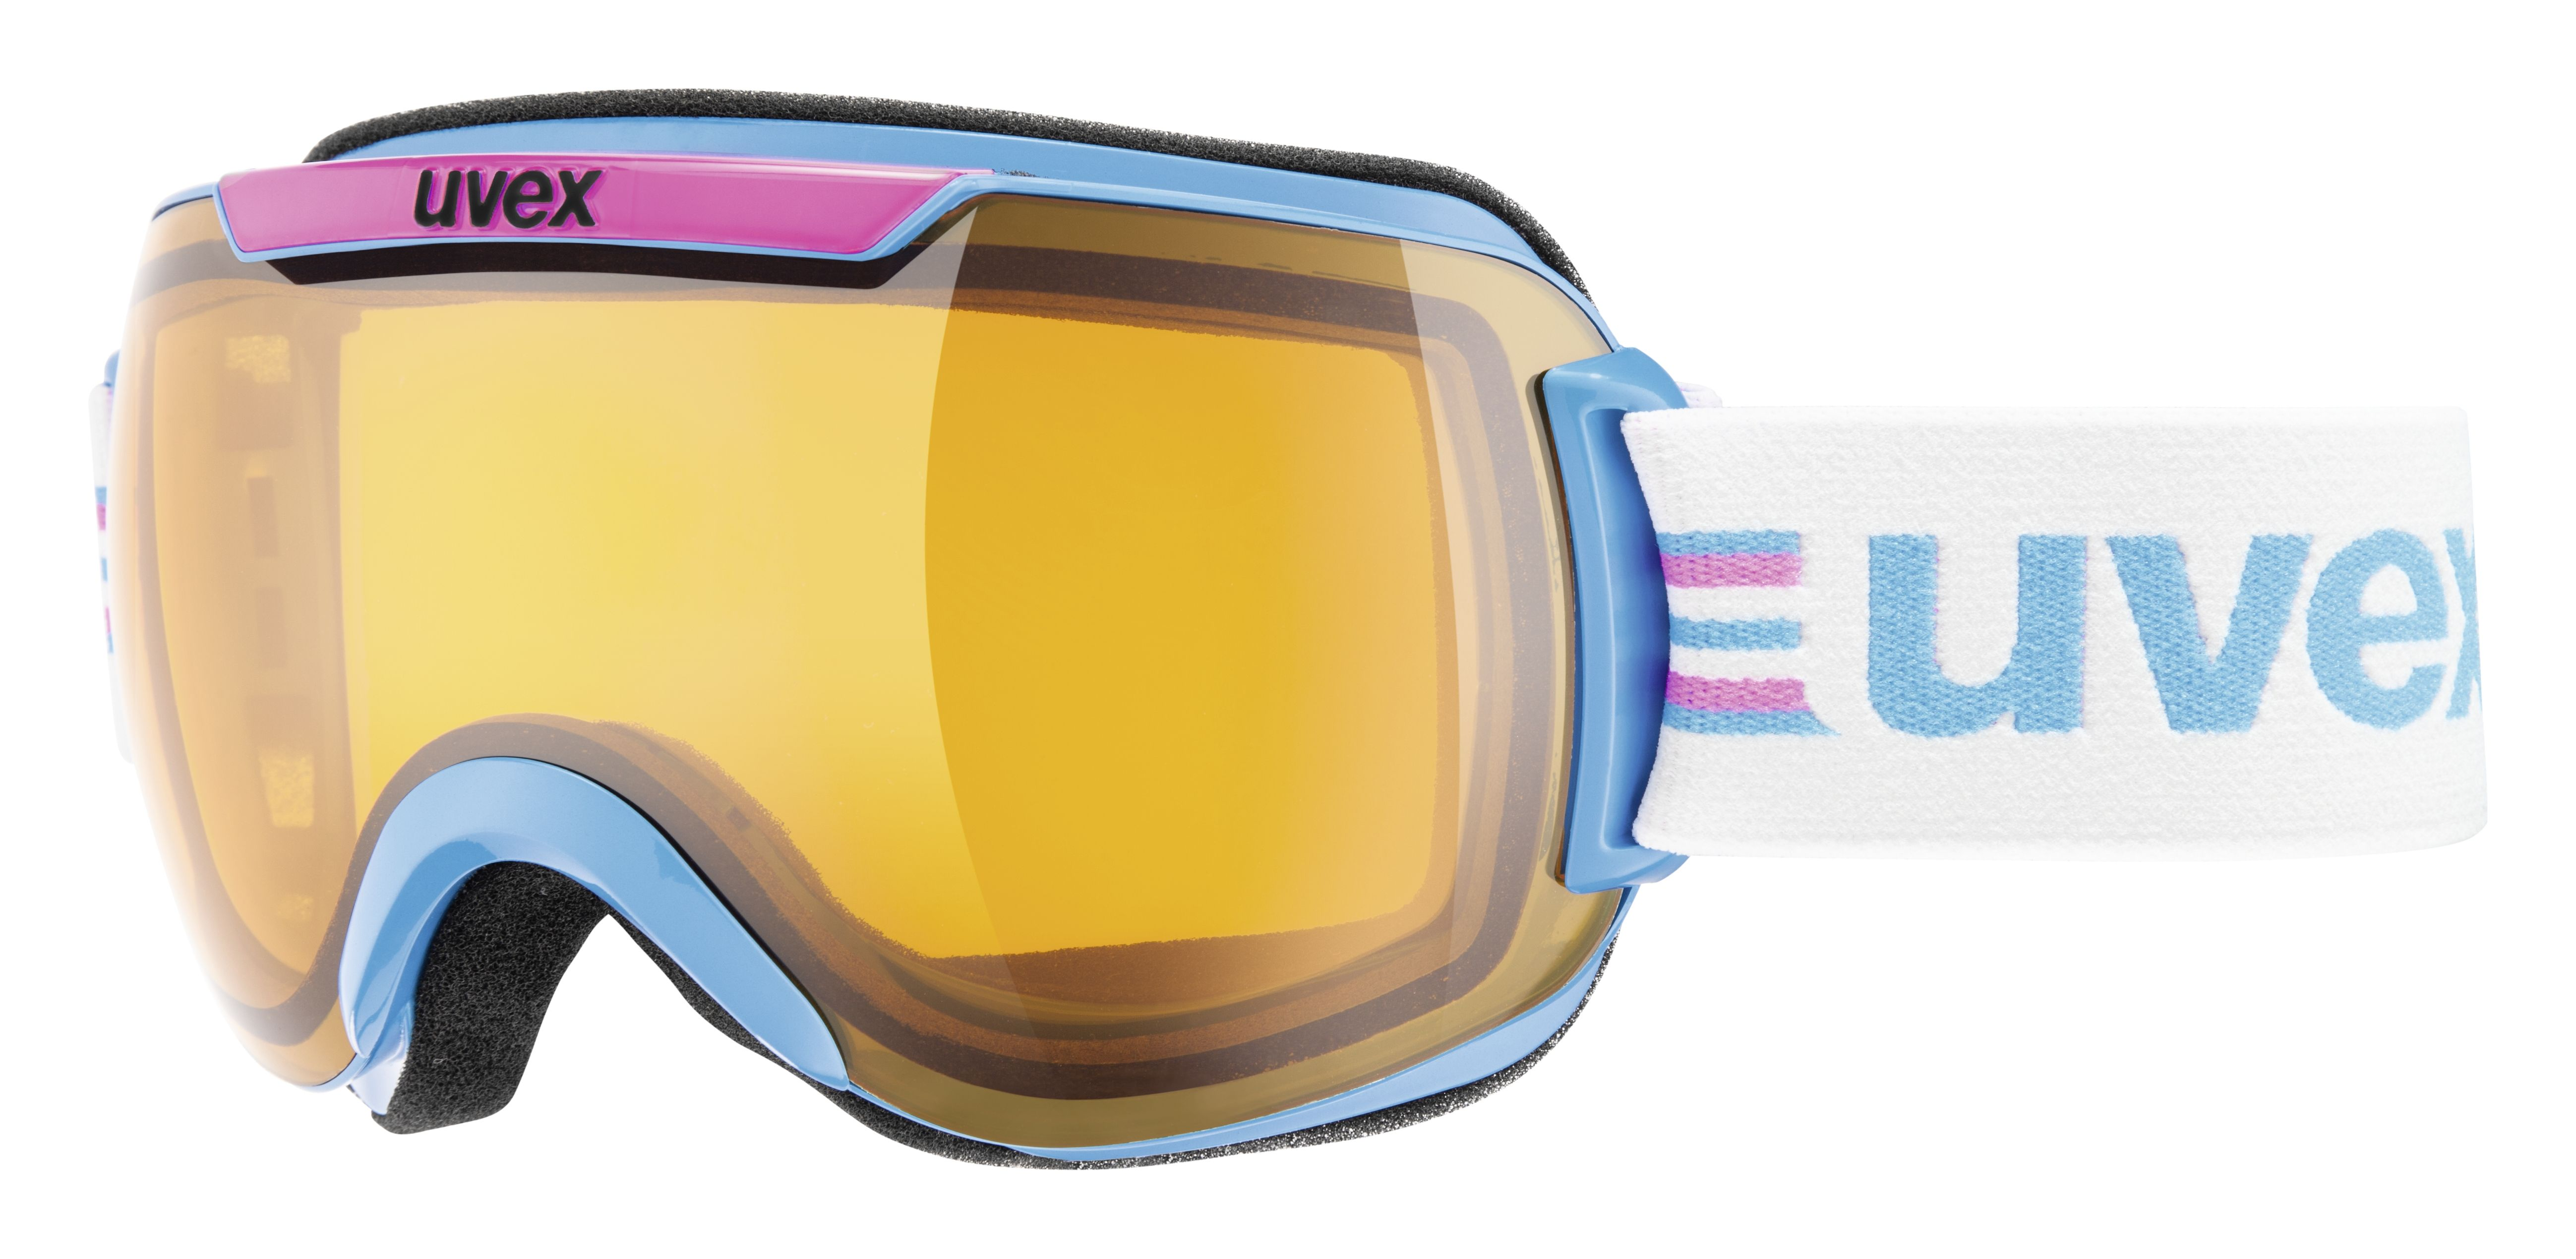 uvex downhill 2000 race // The lush over-sized uvex Downhill 2000 goggles just looks fantastic. In powder it scores points with its frameless construction. Even the heavier spray will glide easily off the goggle without sticking to the frame or affecting your sight.